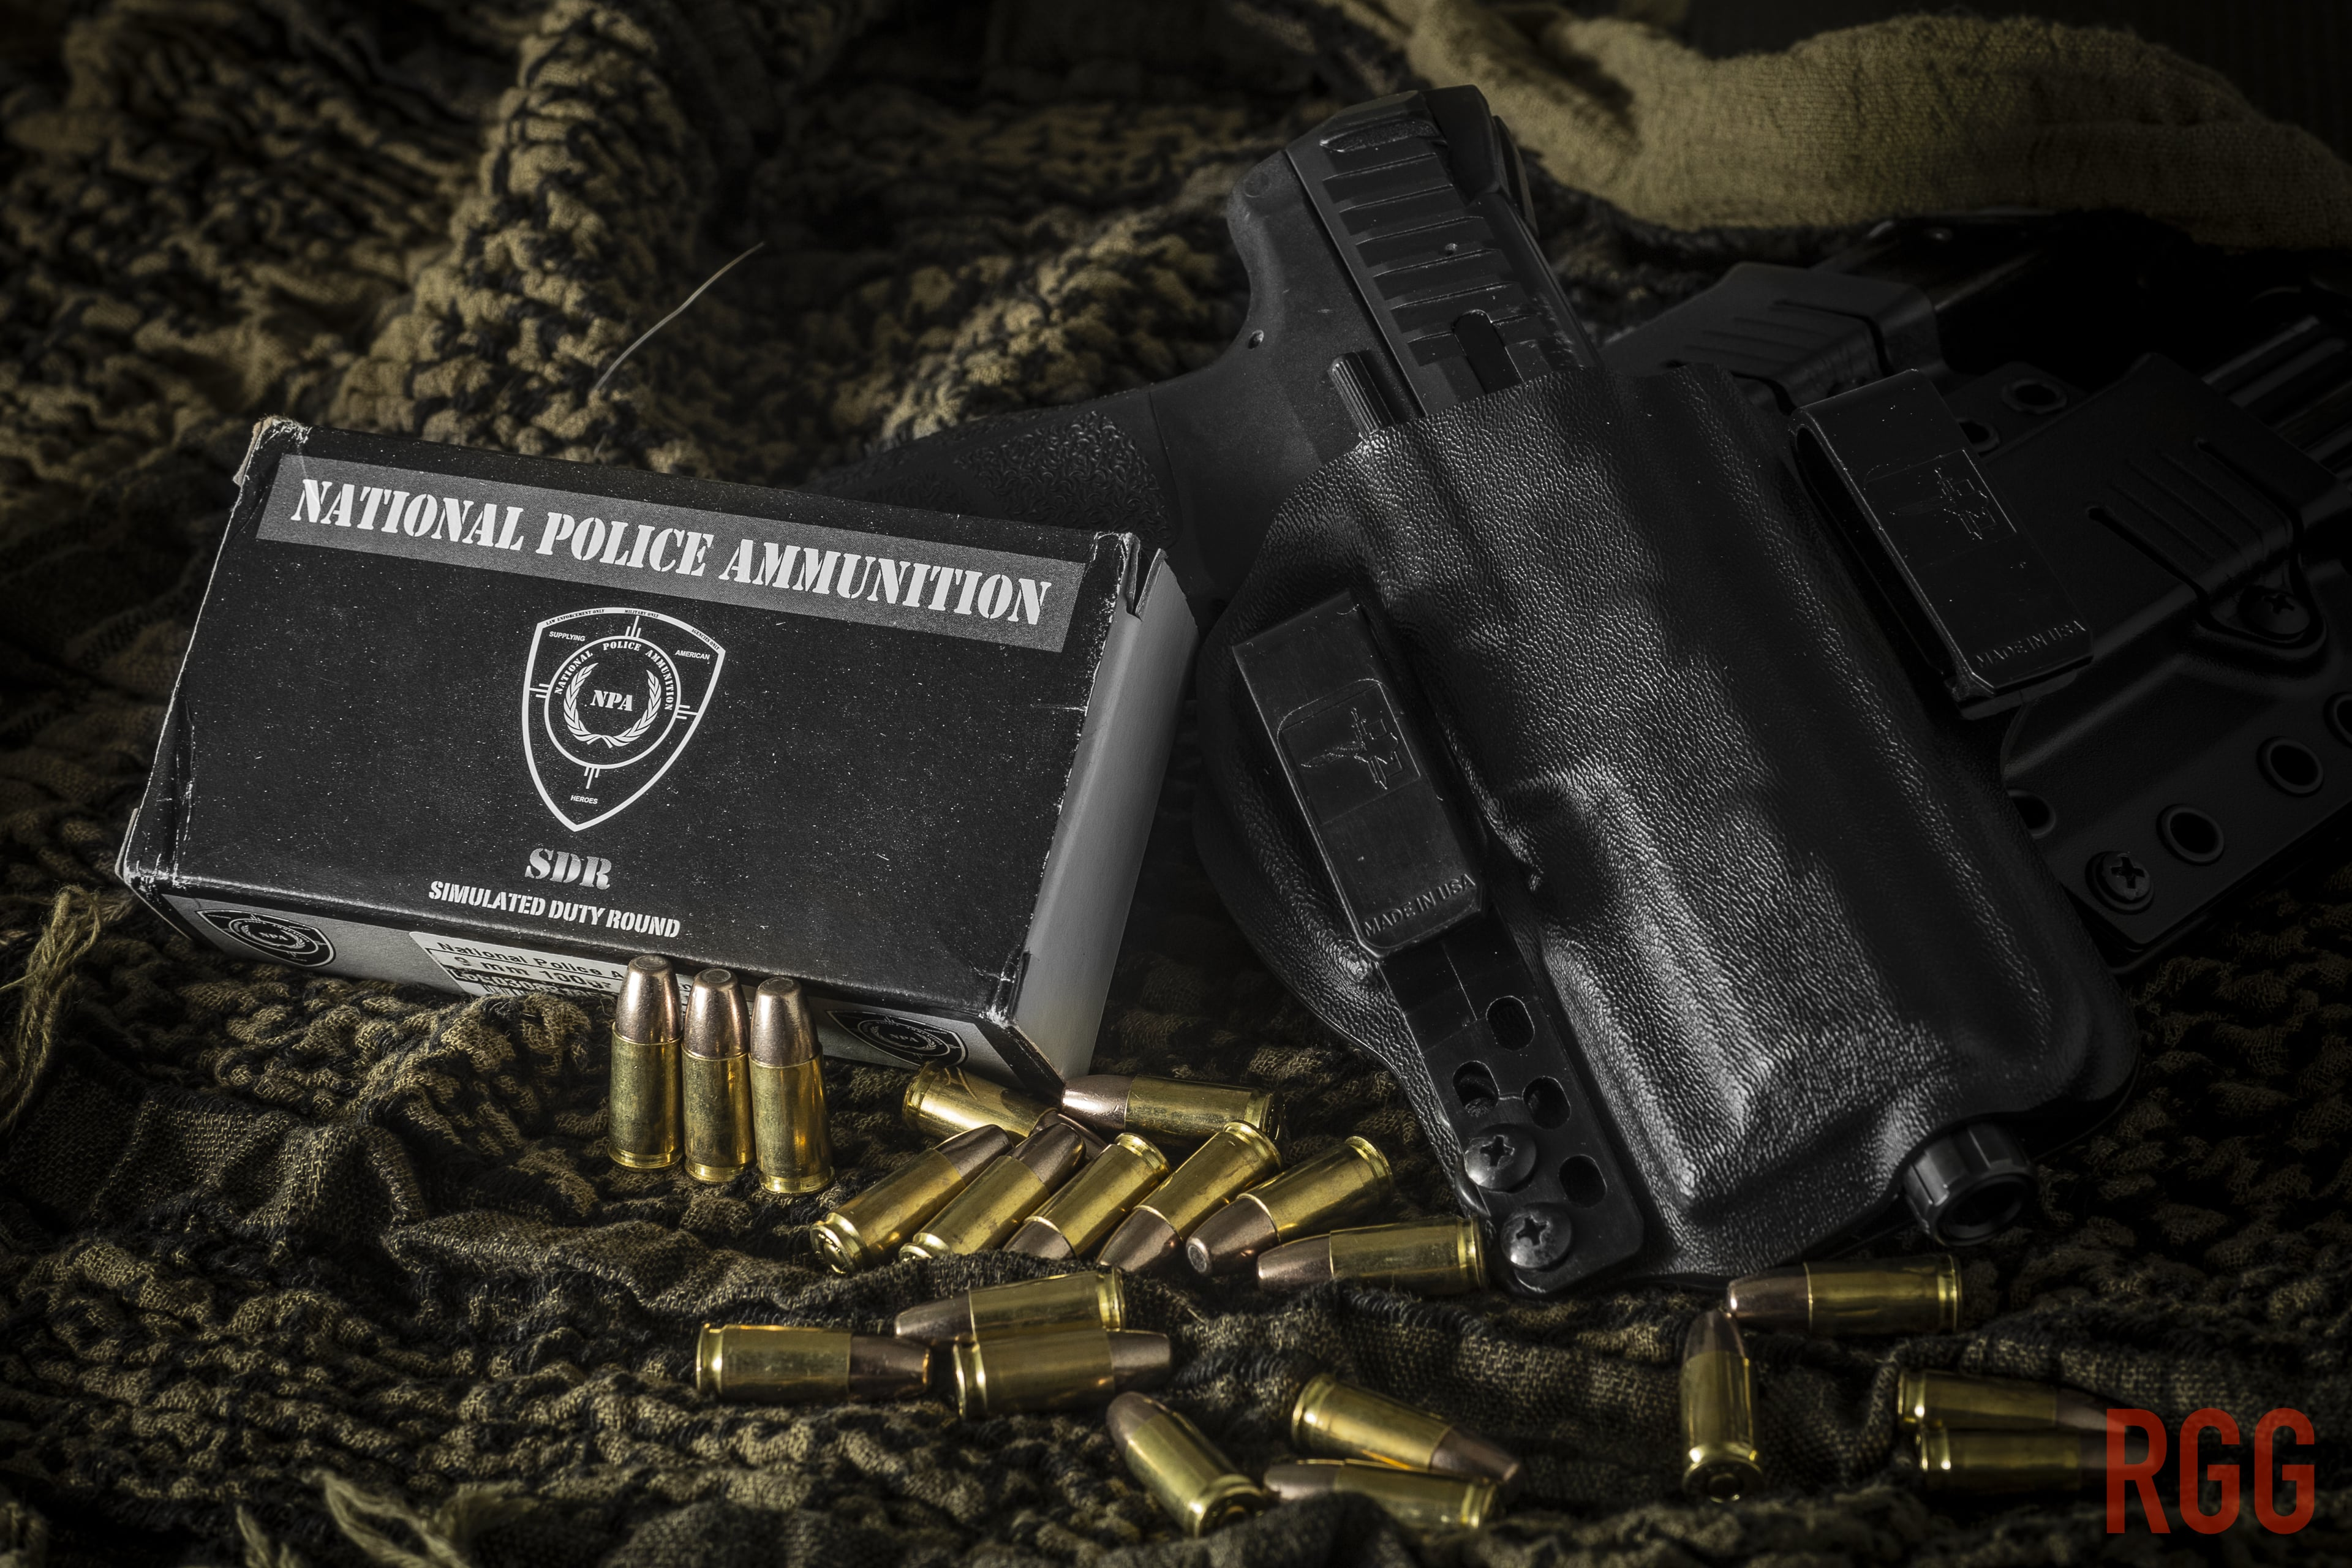 National Police Ammunition 9mm 100gr Simulated Duty Round.